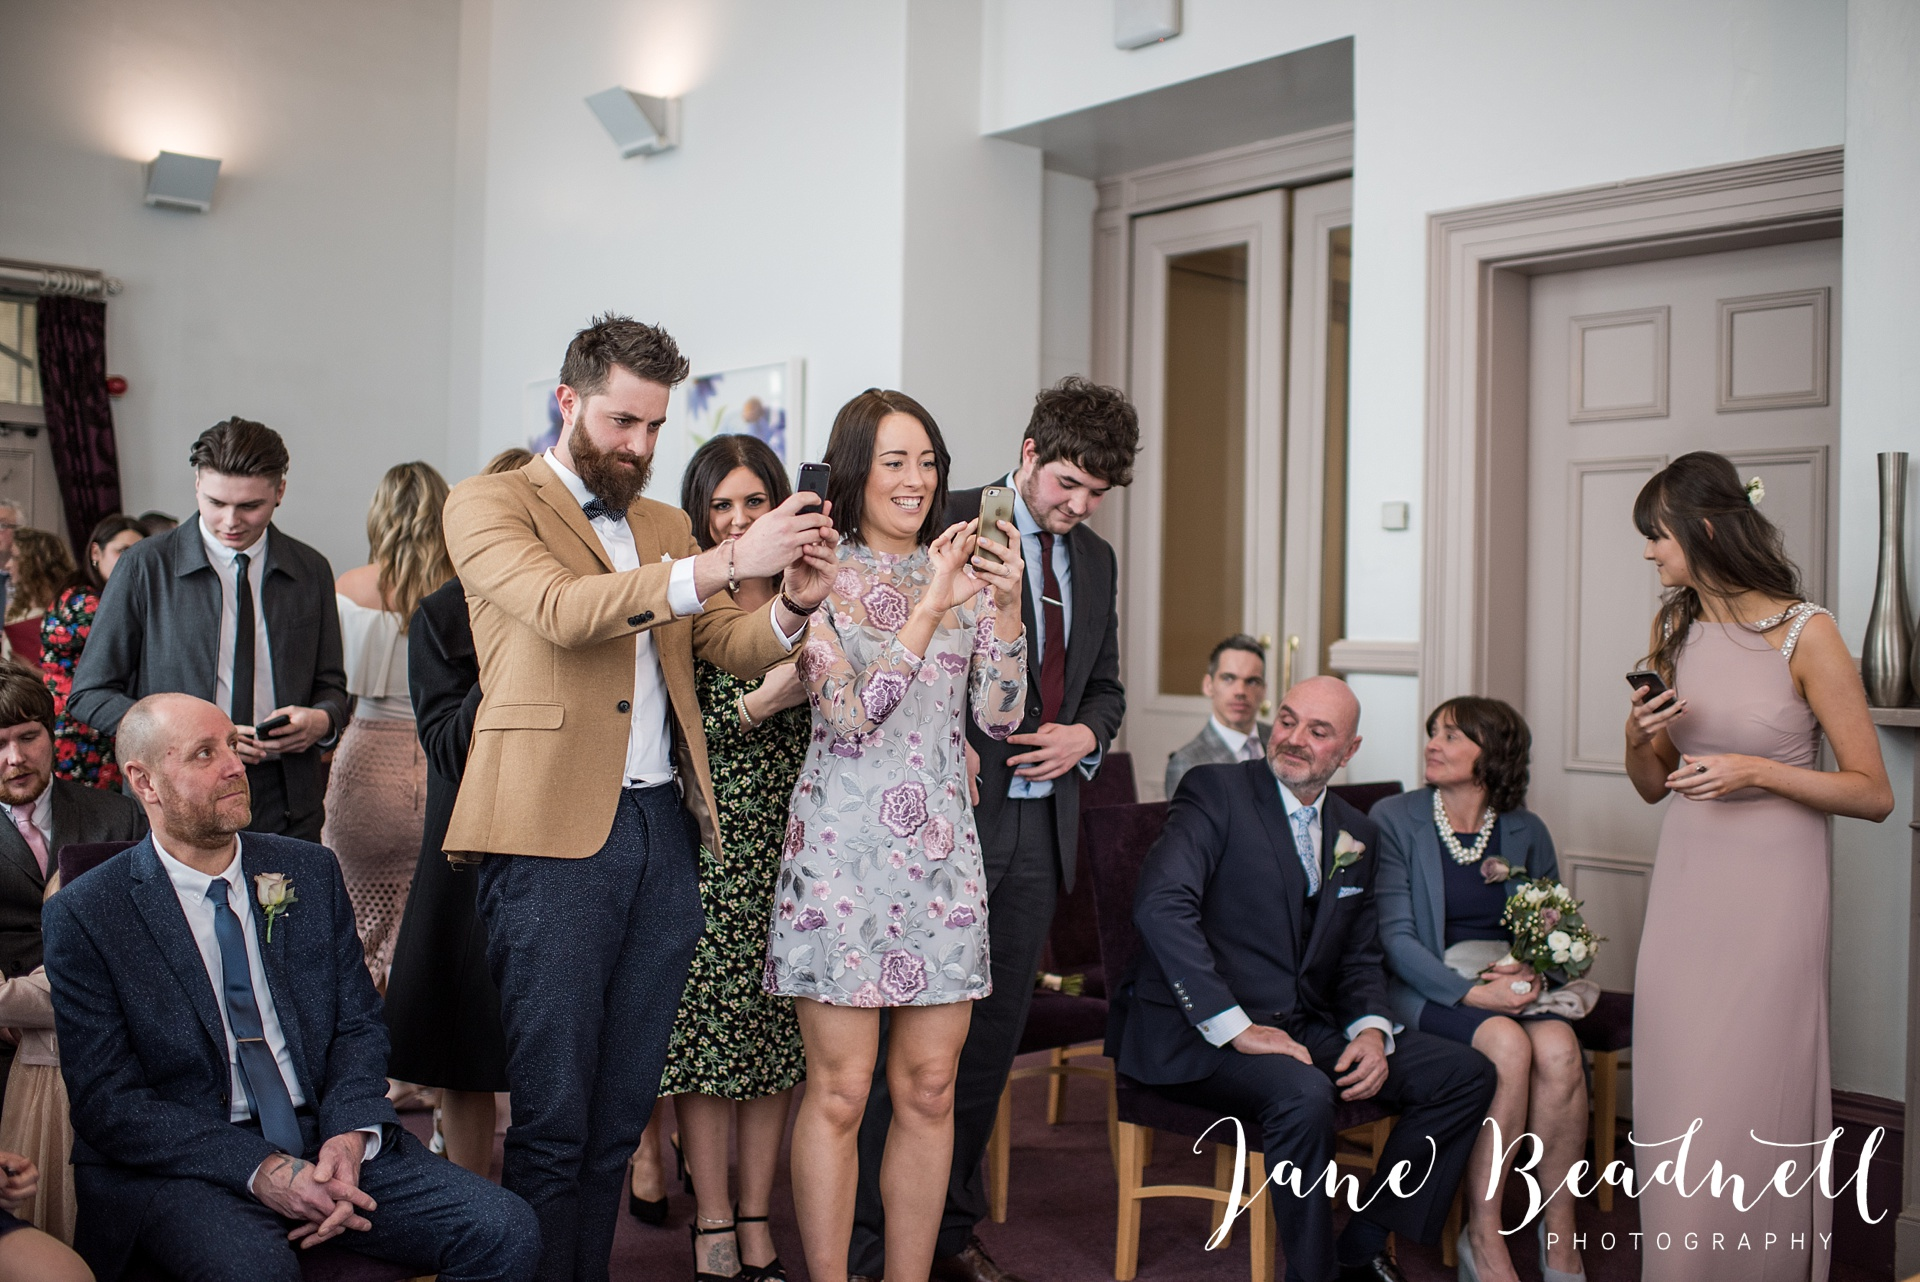 Wedding photography Cross Keys Leeds Wedding Jane Beadnell Photography_0037